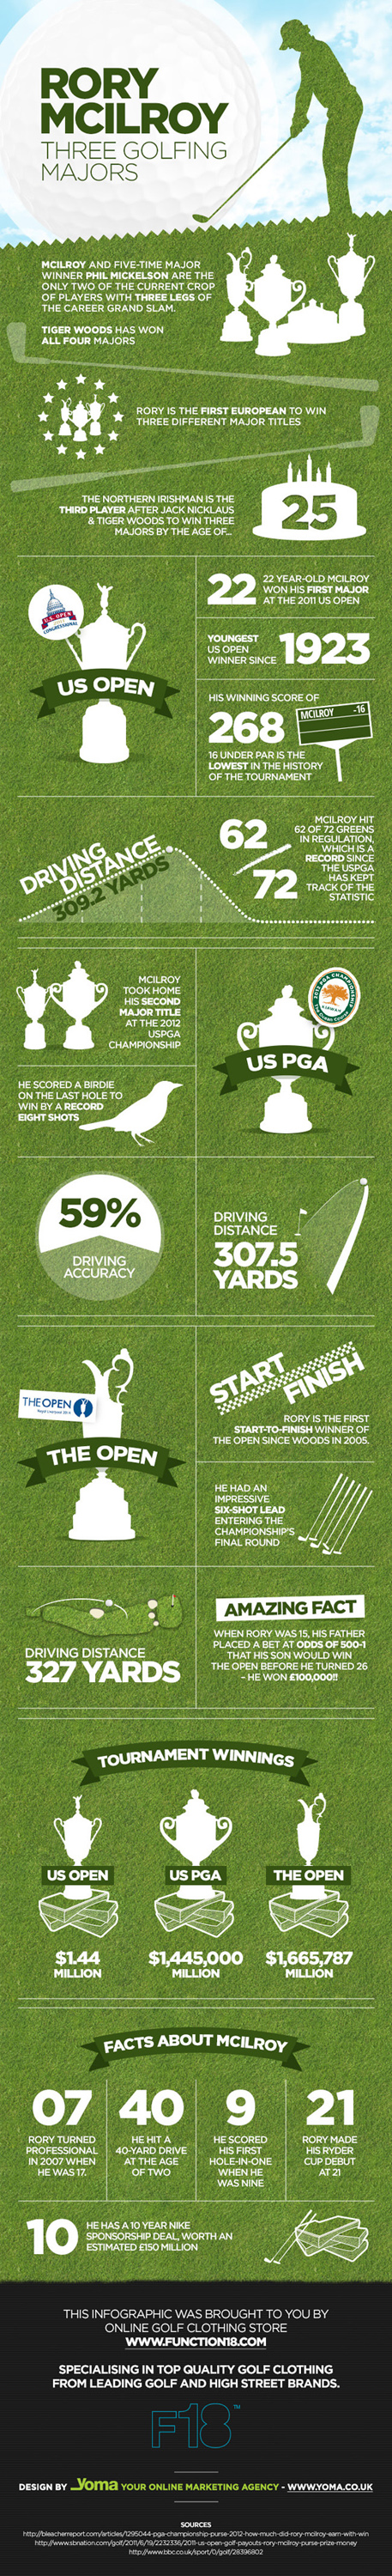 Stats on Open Champion 2014 - Rory McIlroy